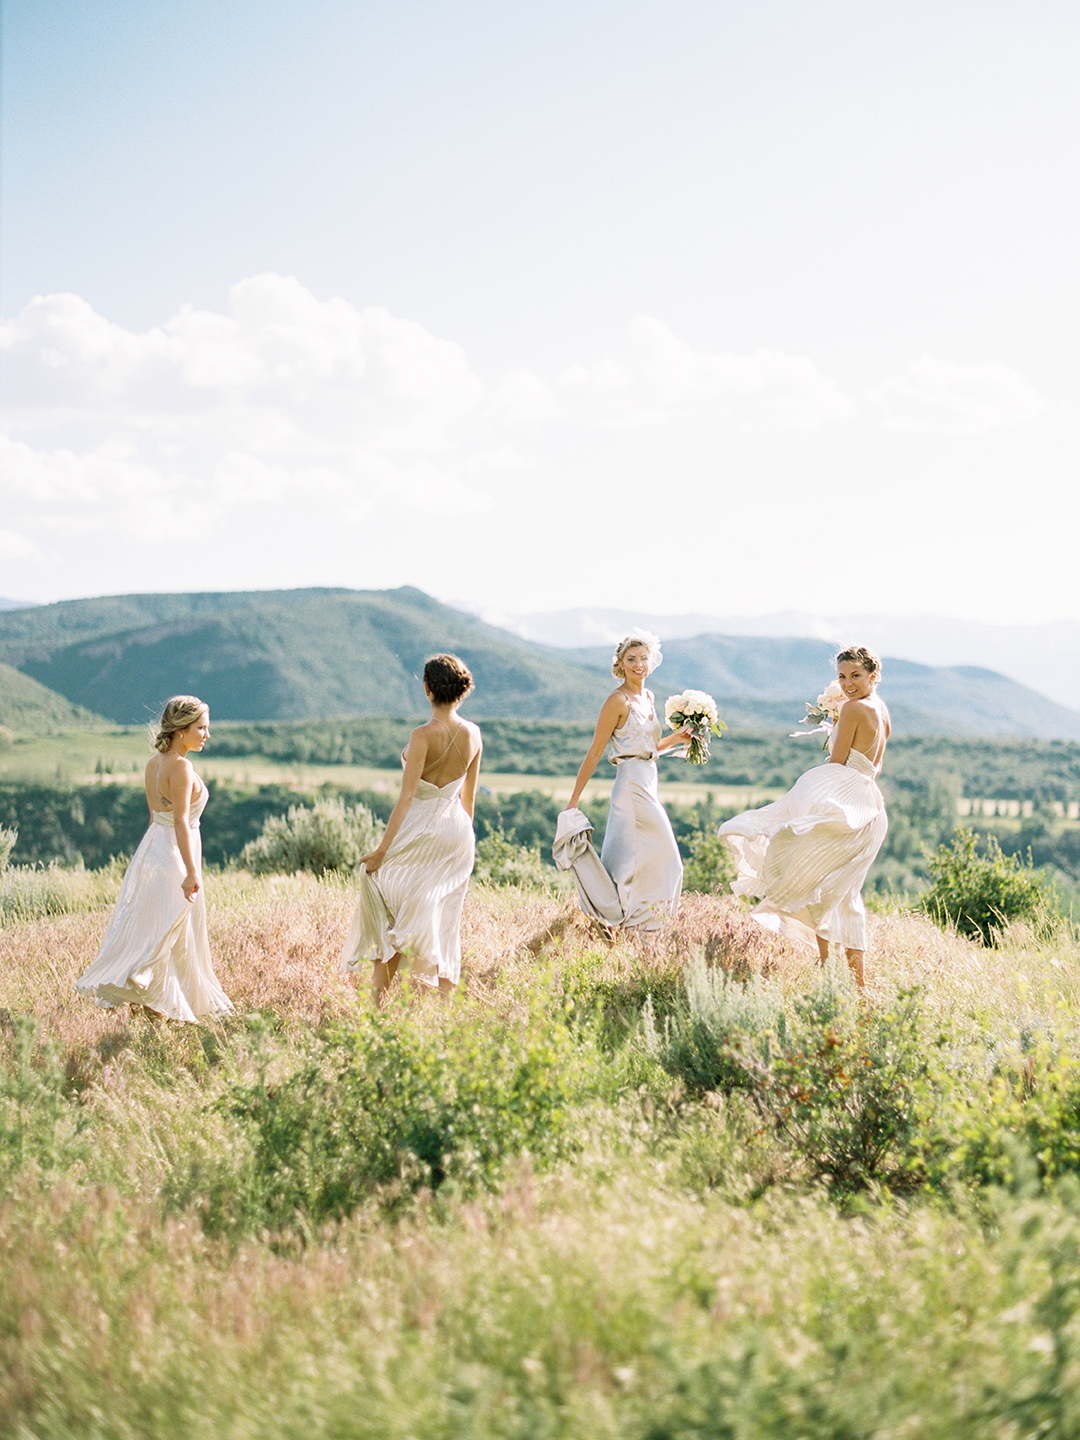 372_Barclay+Molly_Brumley & Wells_Fine_Art_Film_Photography_Aspen_Wedding.jpg